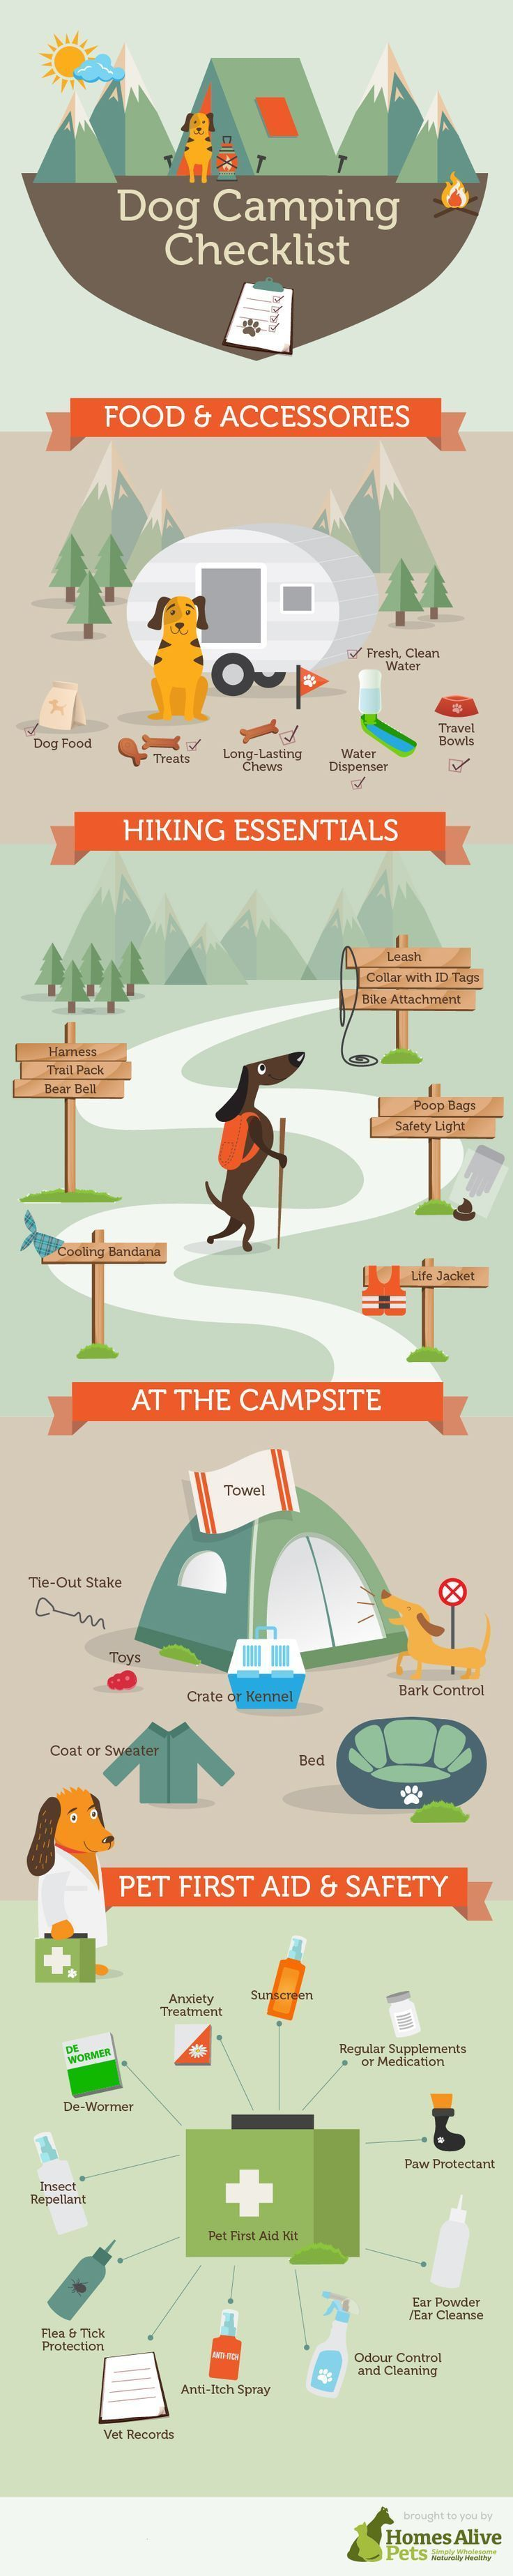 Dog Camping Checklist #infographic #Dog #Pets #Travel